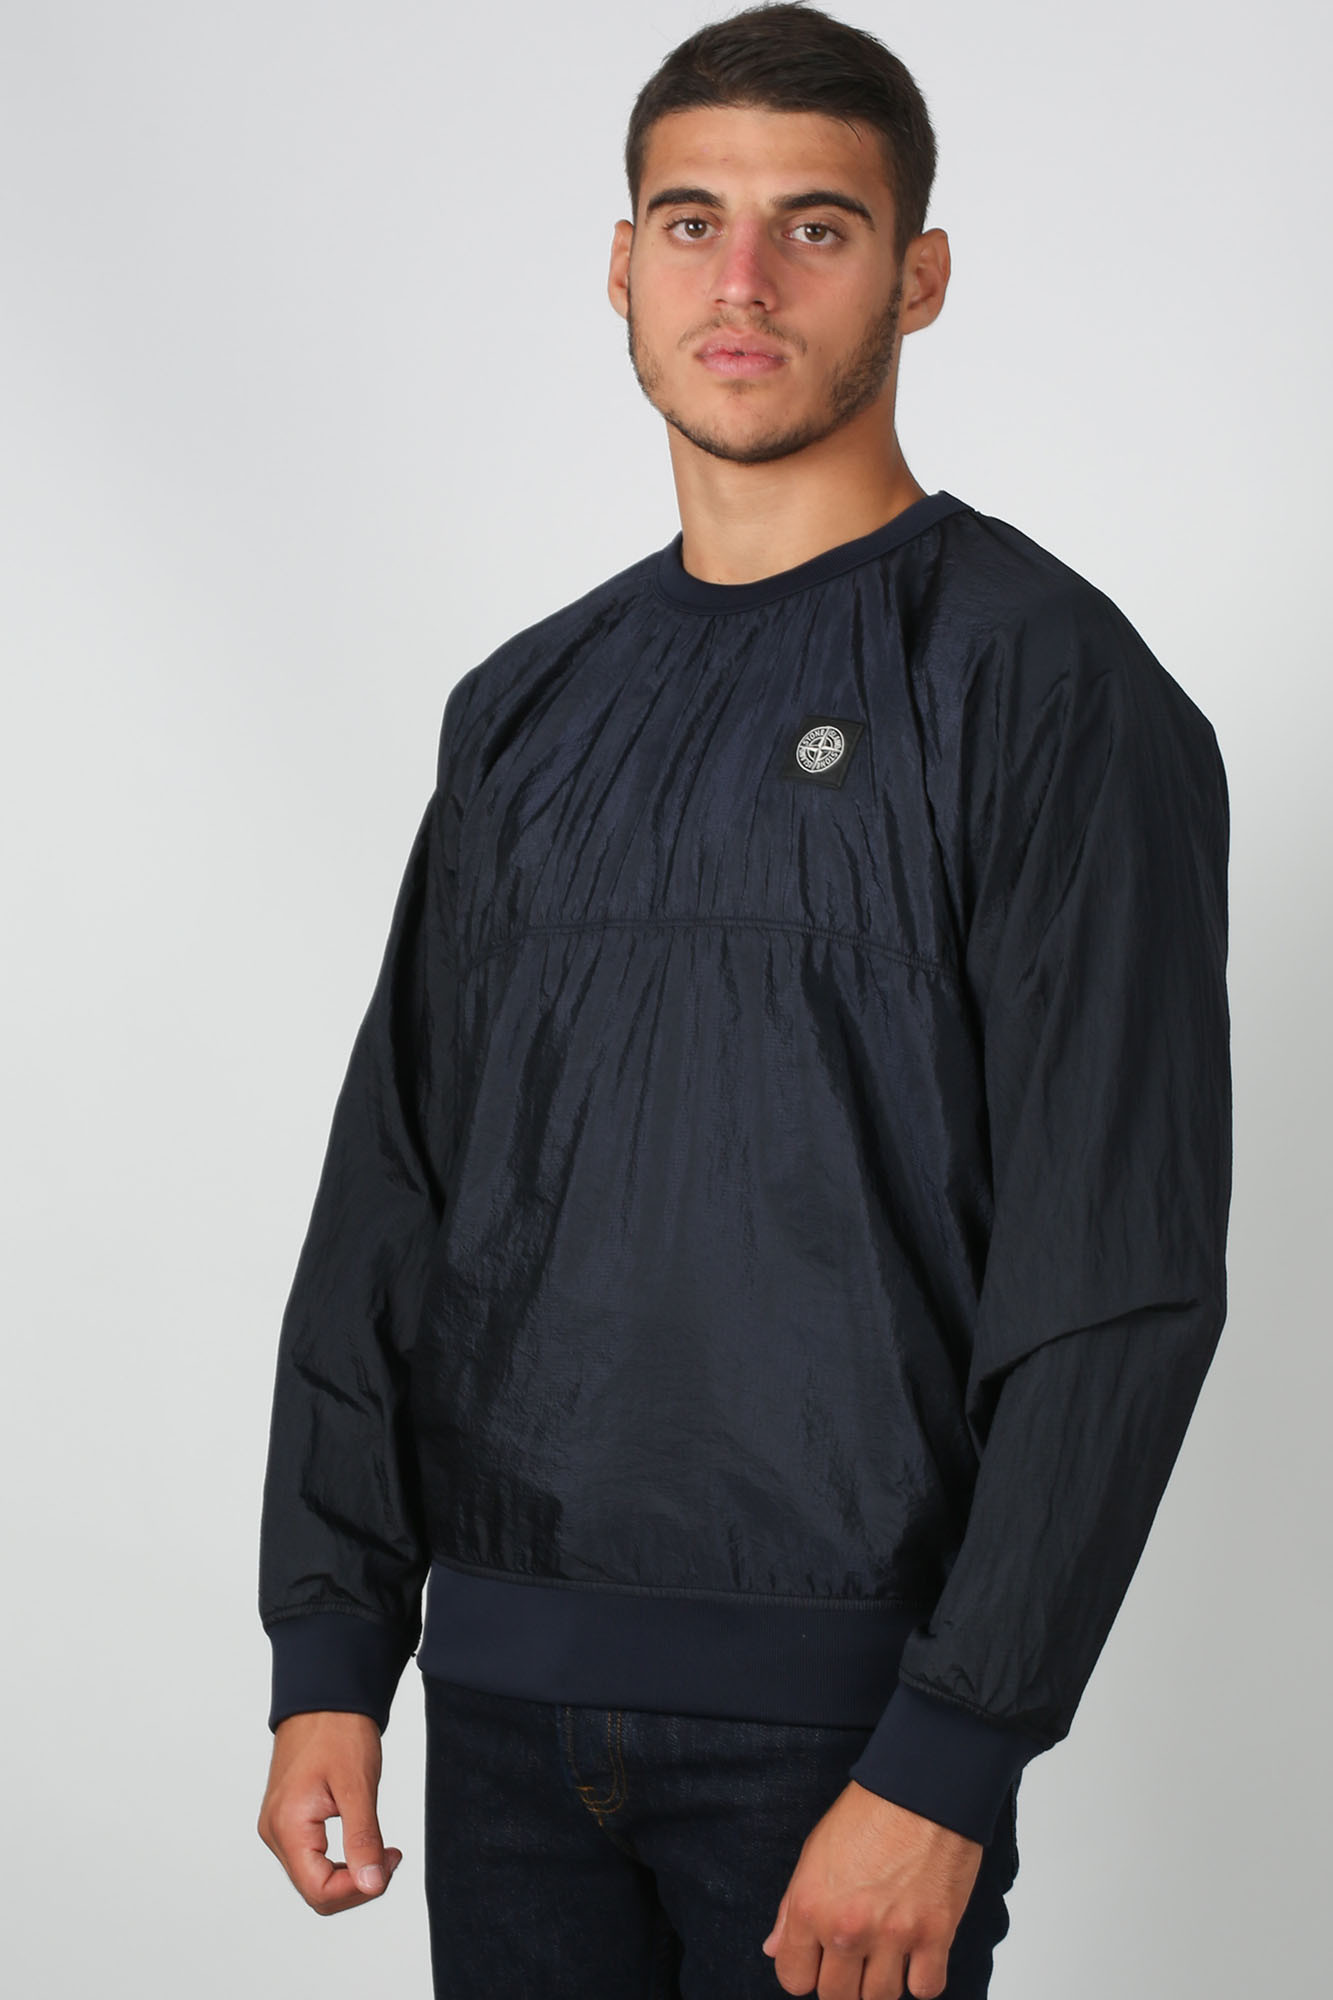 SWEAT-SHIRT STONE ISLAND MARINE 711563036-V0020